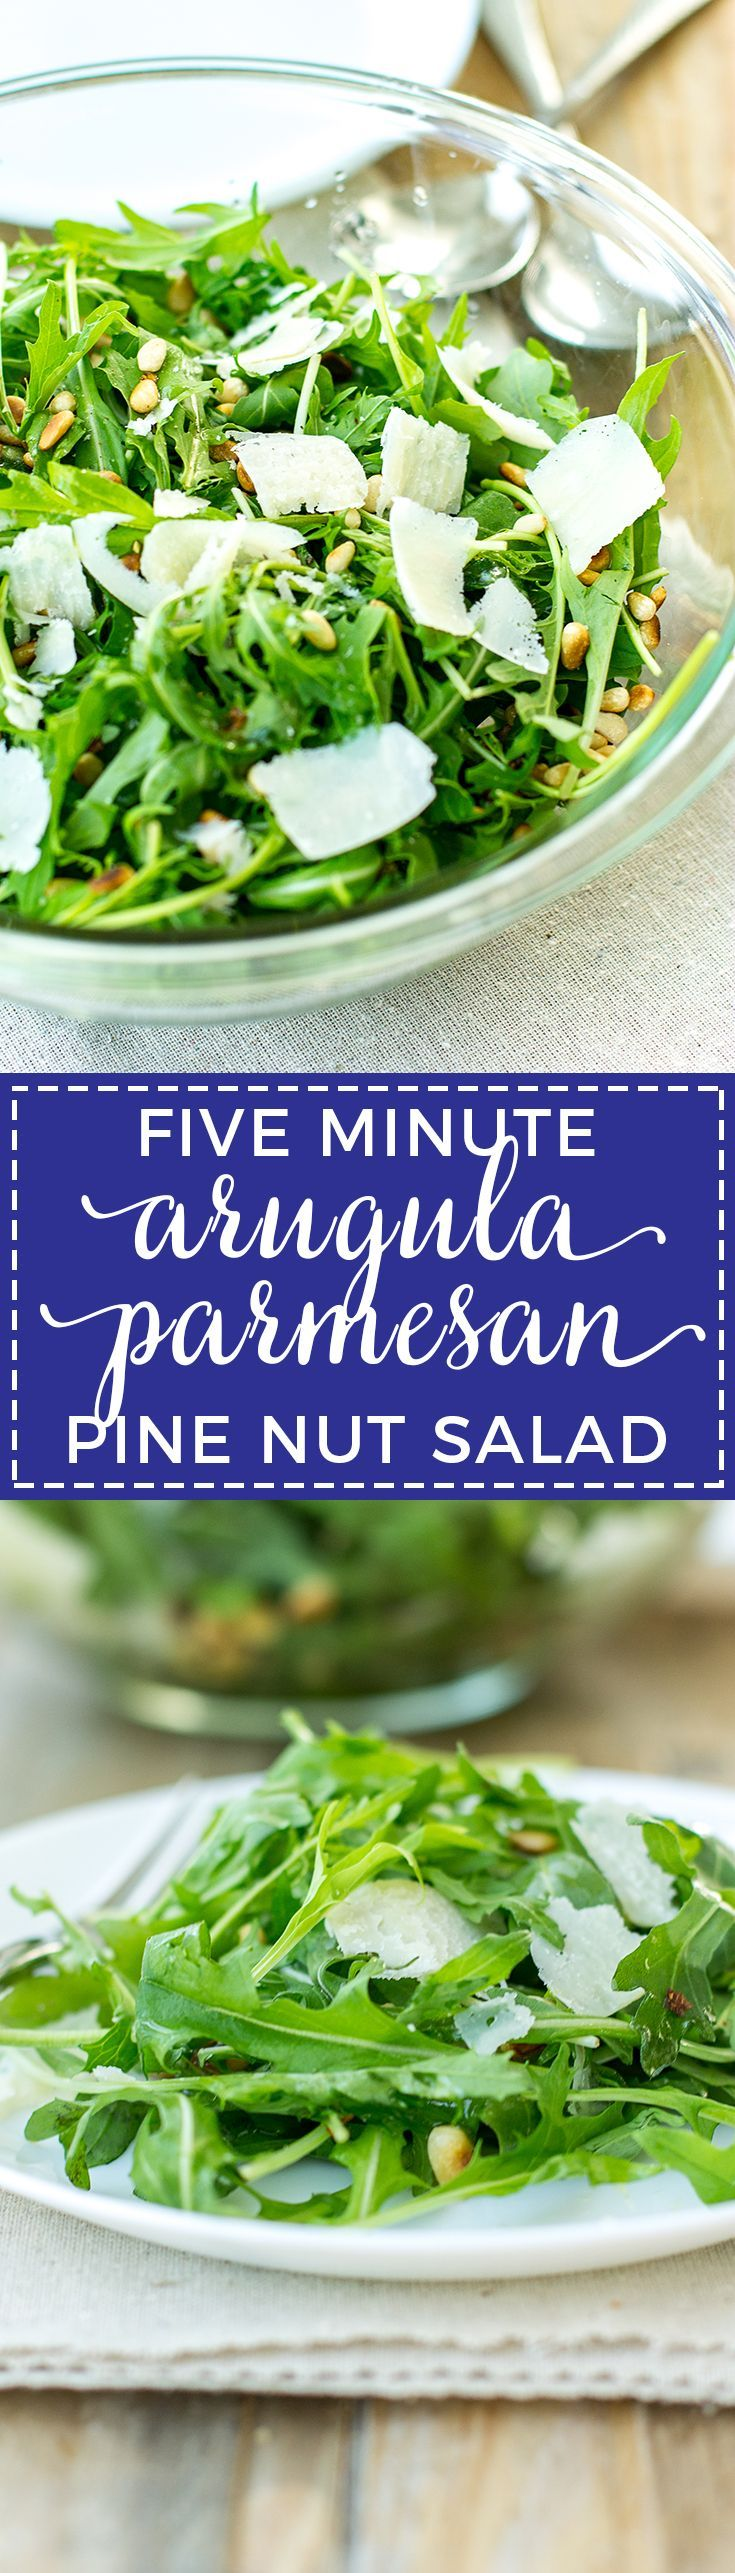 An arugula parmesan pine nut salad that's ready in five minutes (really!), out-of-this-world delicious, and great for casual weeknights or entertaining. via @nourishandfete